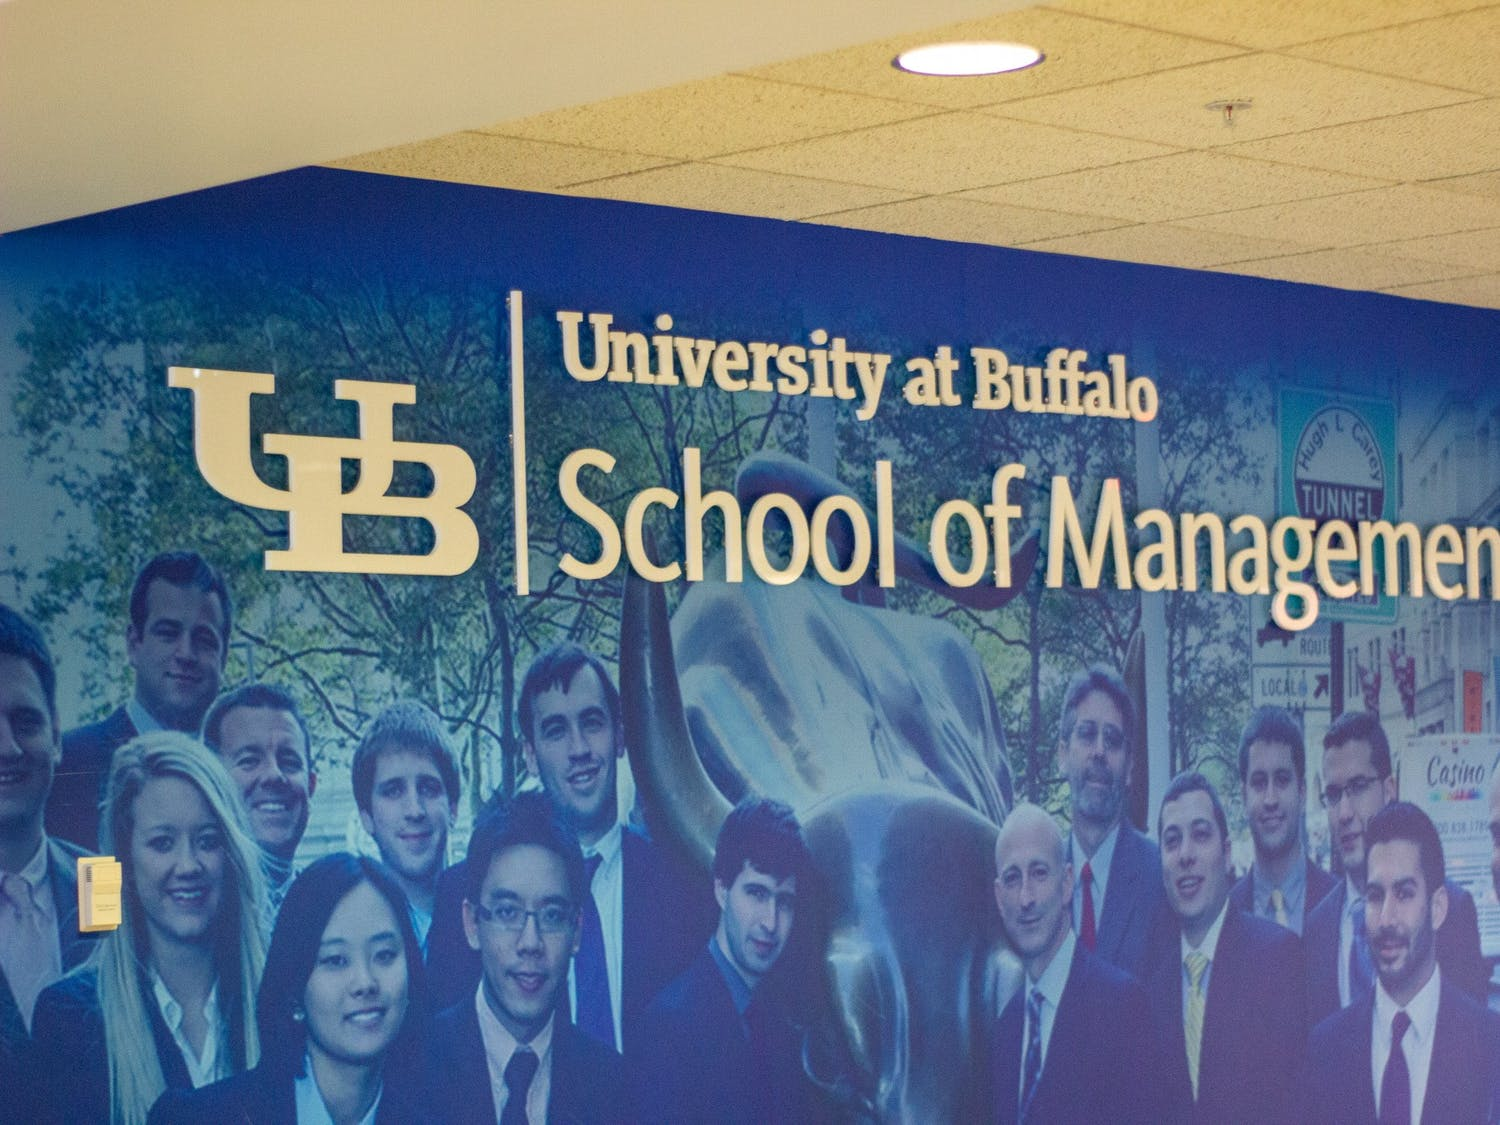 Dean of the School of Management co-signs a letter asking for a change in immigration policies after seeing a decline in international business school applicants.